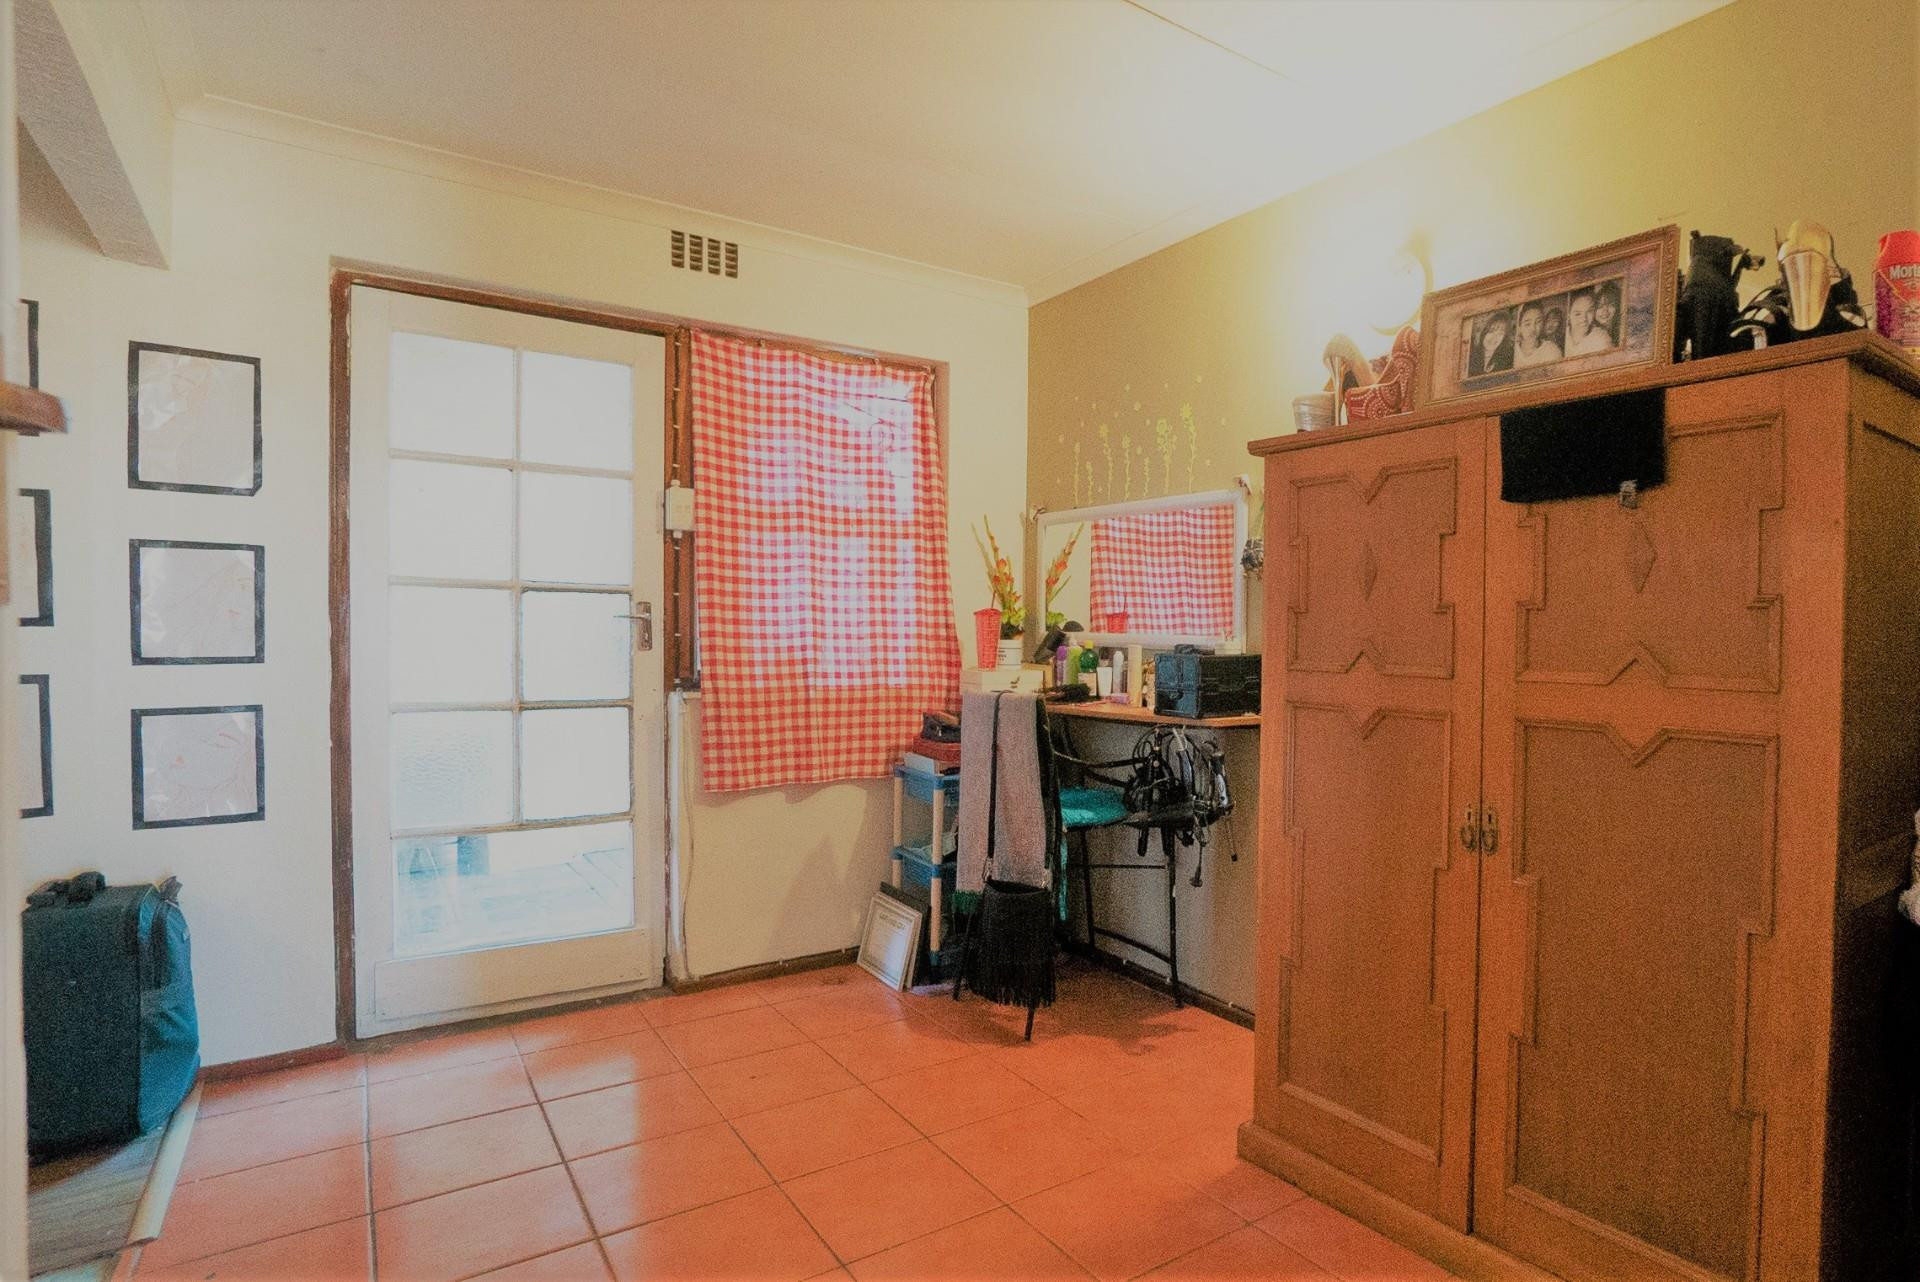 4 Bedroom House For Sale in Strandfontein